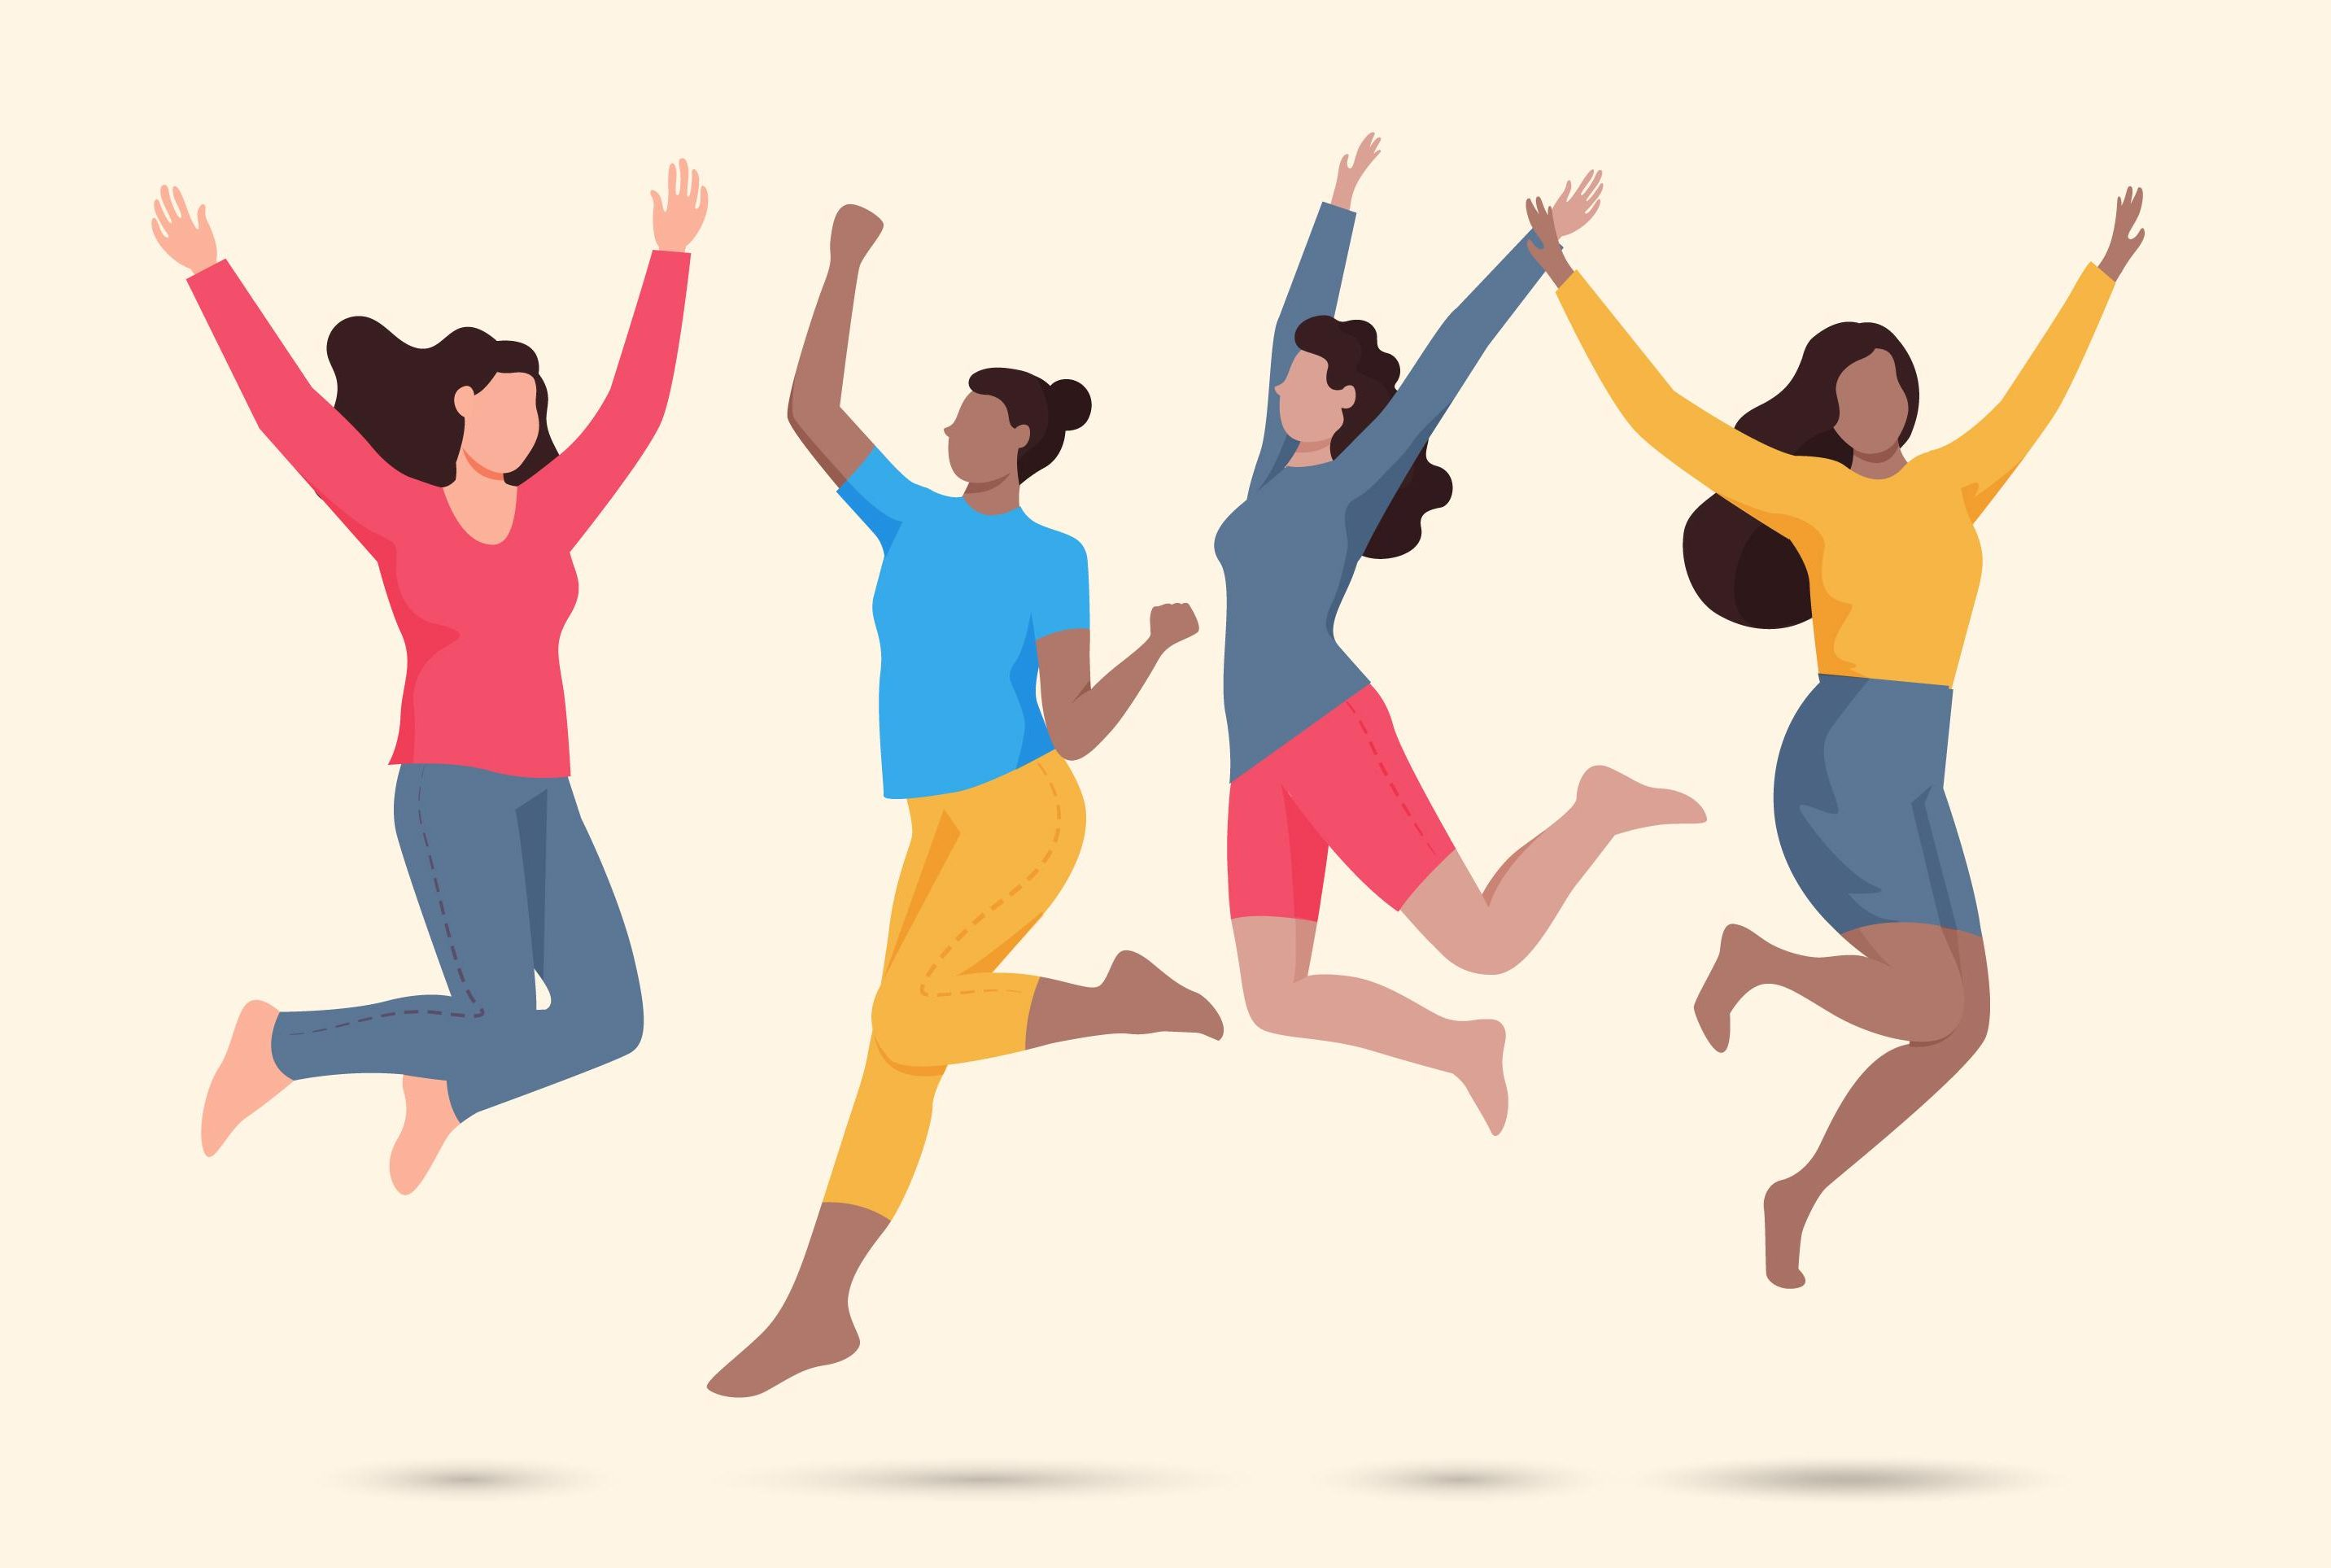 An image representing women jumping in the air in celebration, courtesy of Freepik.